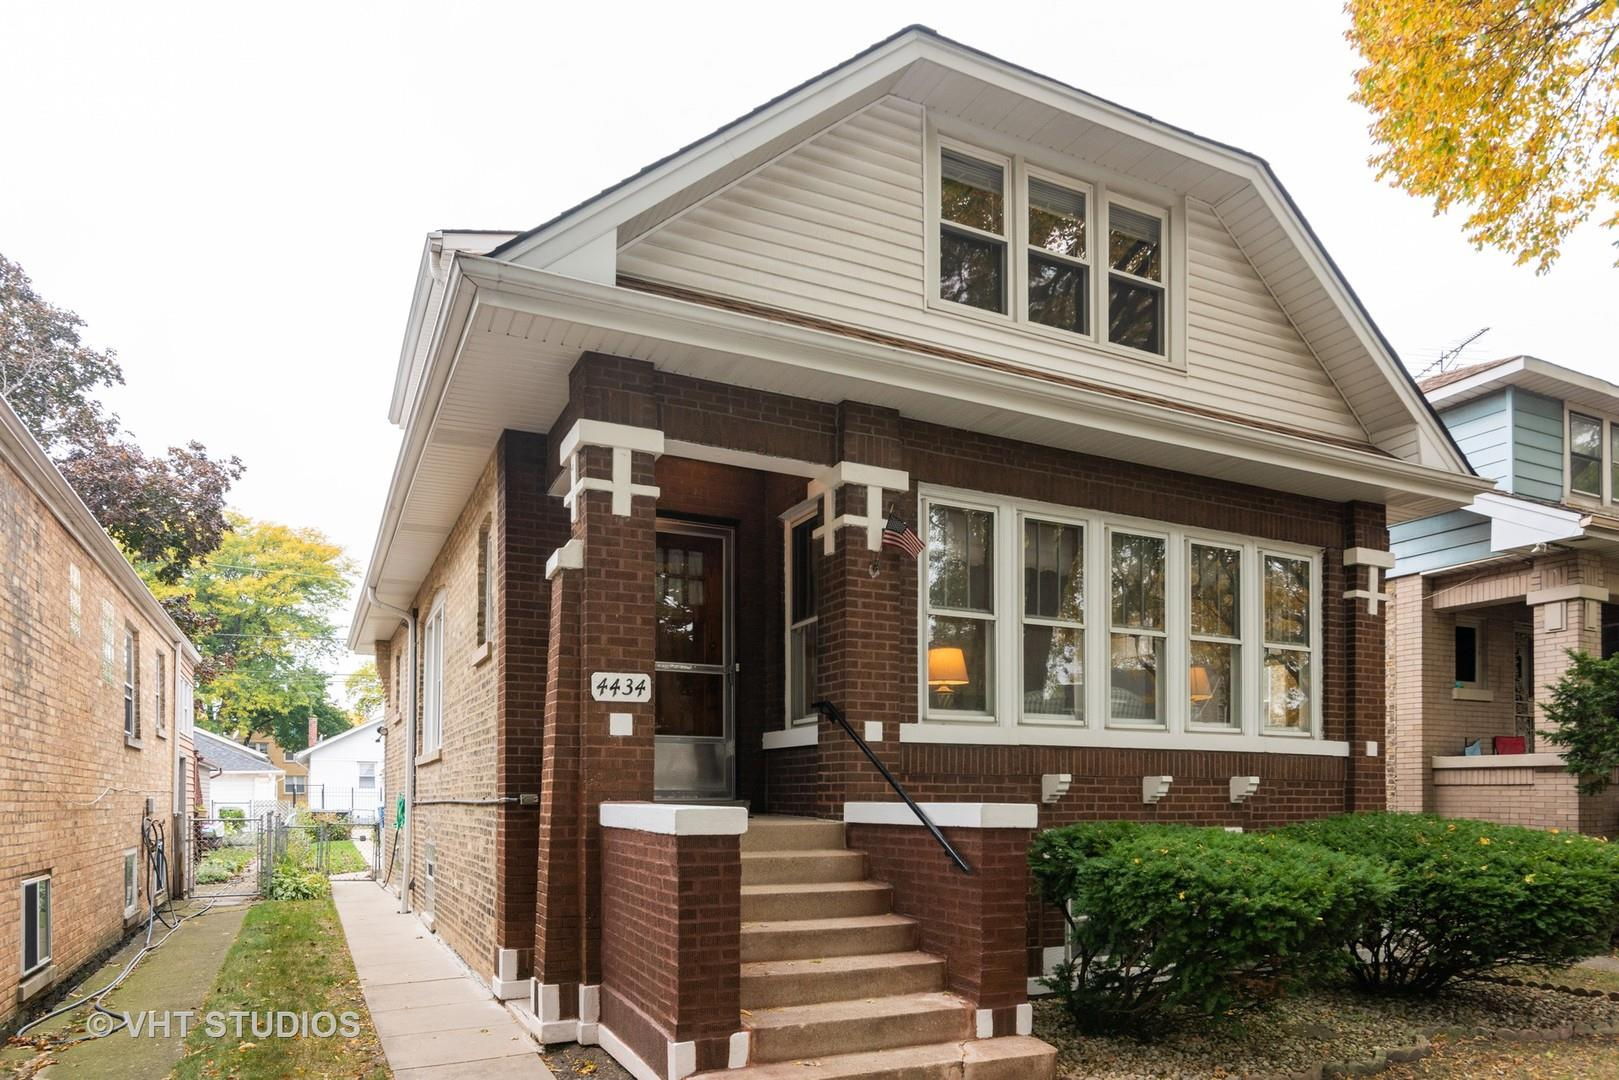 4434 N Lamon Avenue, Chicago, IL 60630 - #: 10905627